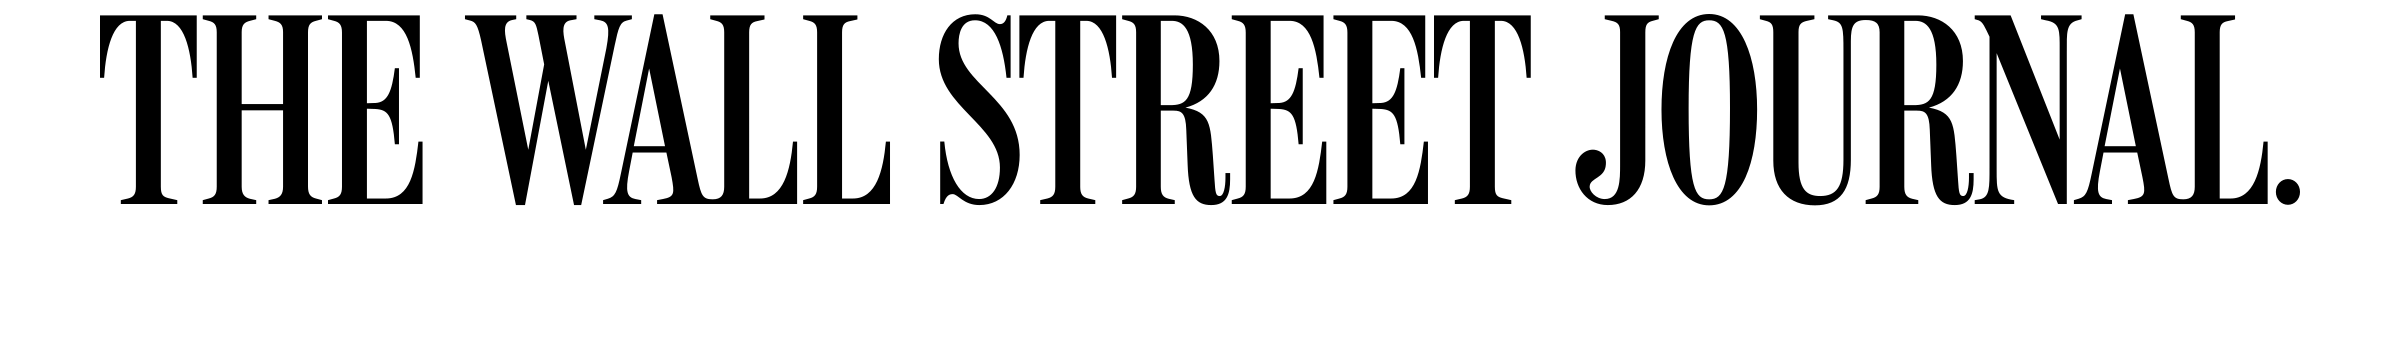 The Wall Street Journal logo